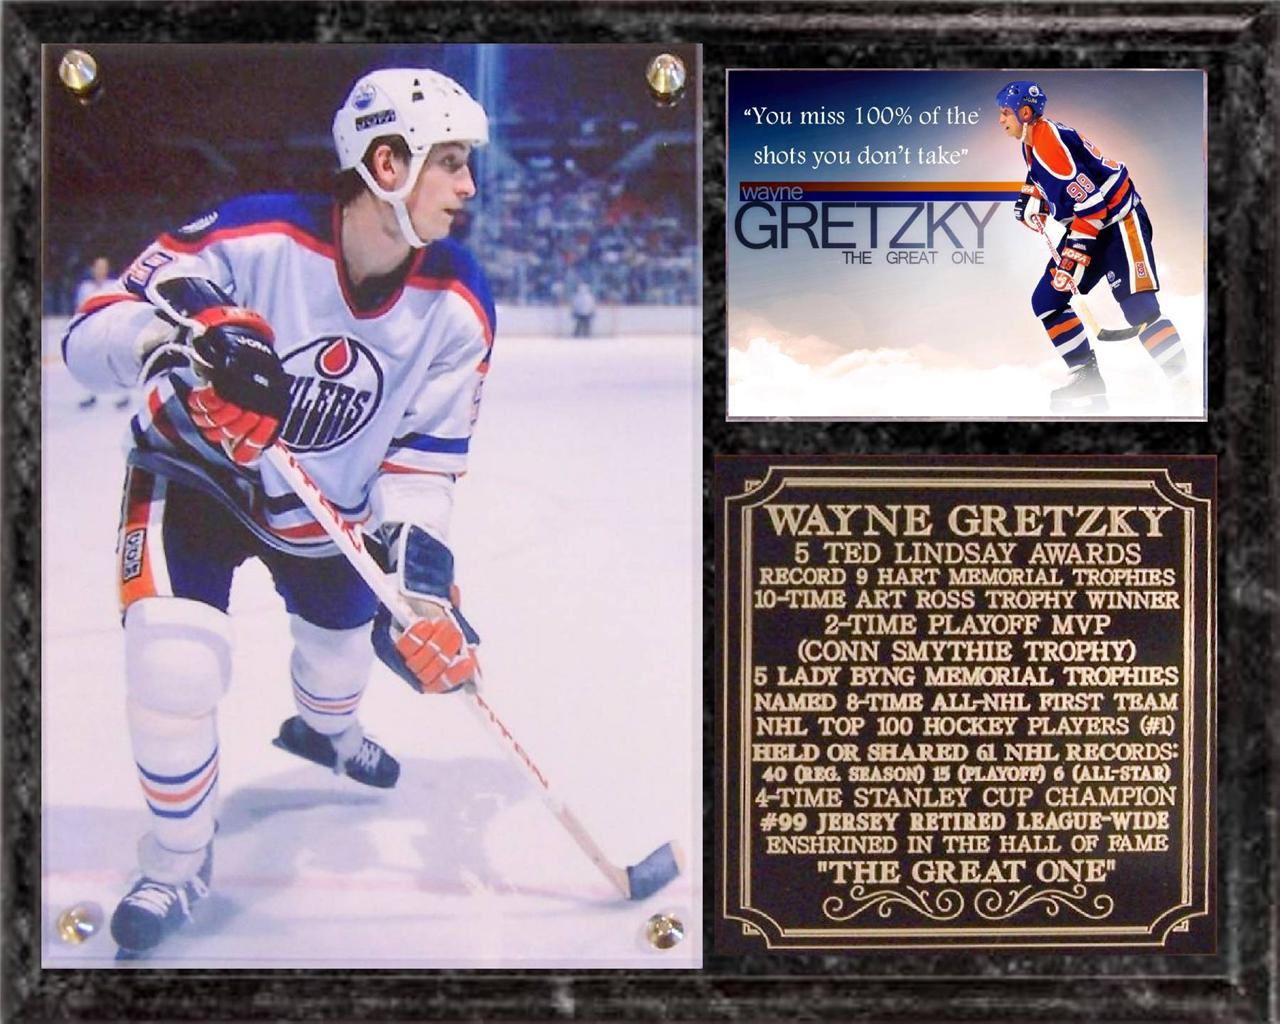 wayne gretzky the great one essay Childhood born in ontario, canada, on january 26 th, 1961, wayne gretzky showed an immediate interest in hockey as a young childwith polish and belarusian parents (although in his childhood, belarus remained part of the soviet union), gretzky has remarked on his ethnic background as being an important part of his 'feeling different.